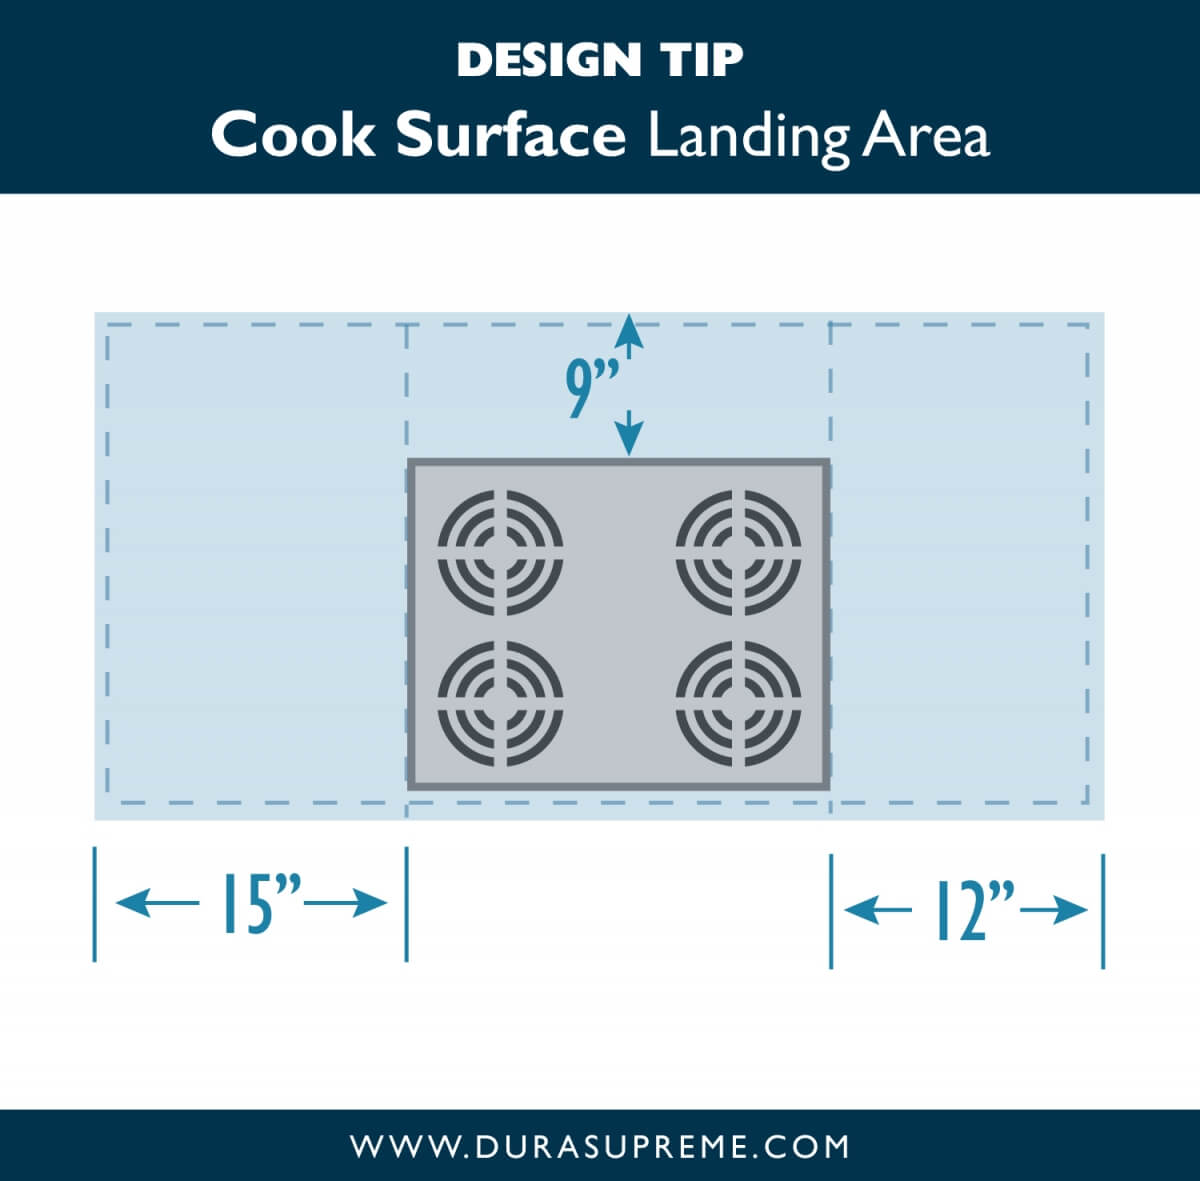 Kitchen Design Tip: Cook Surface or Cooktop Landing Areas